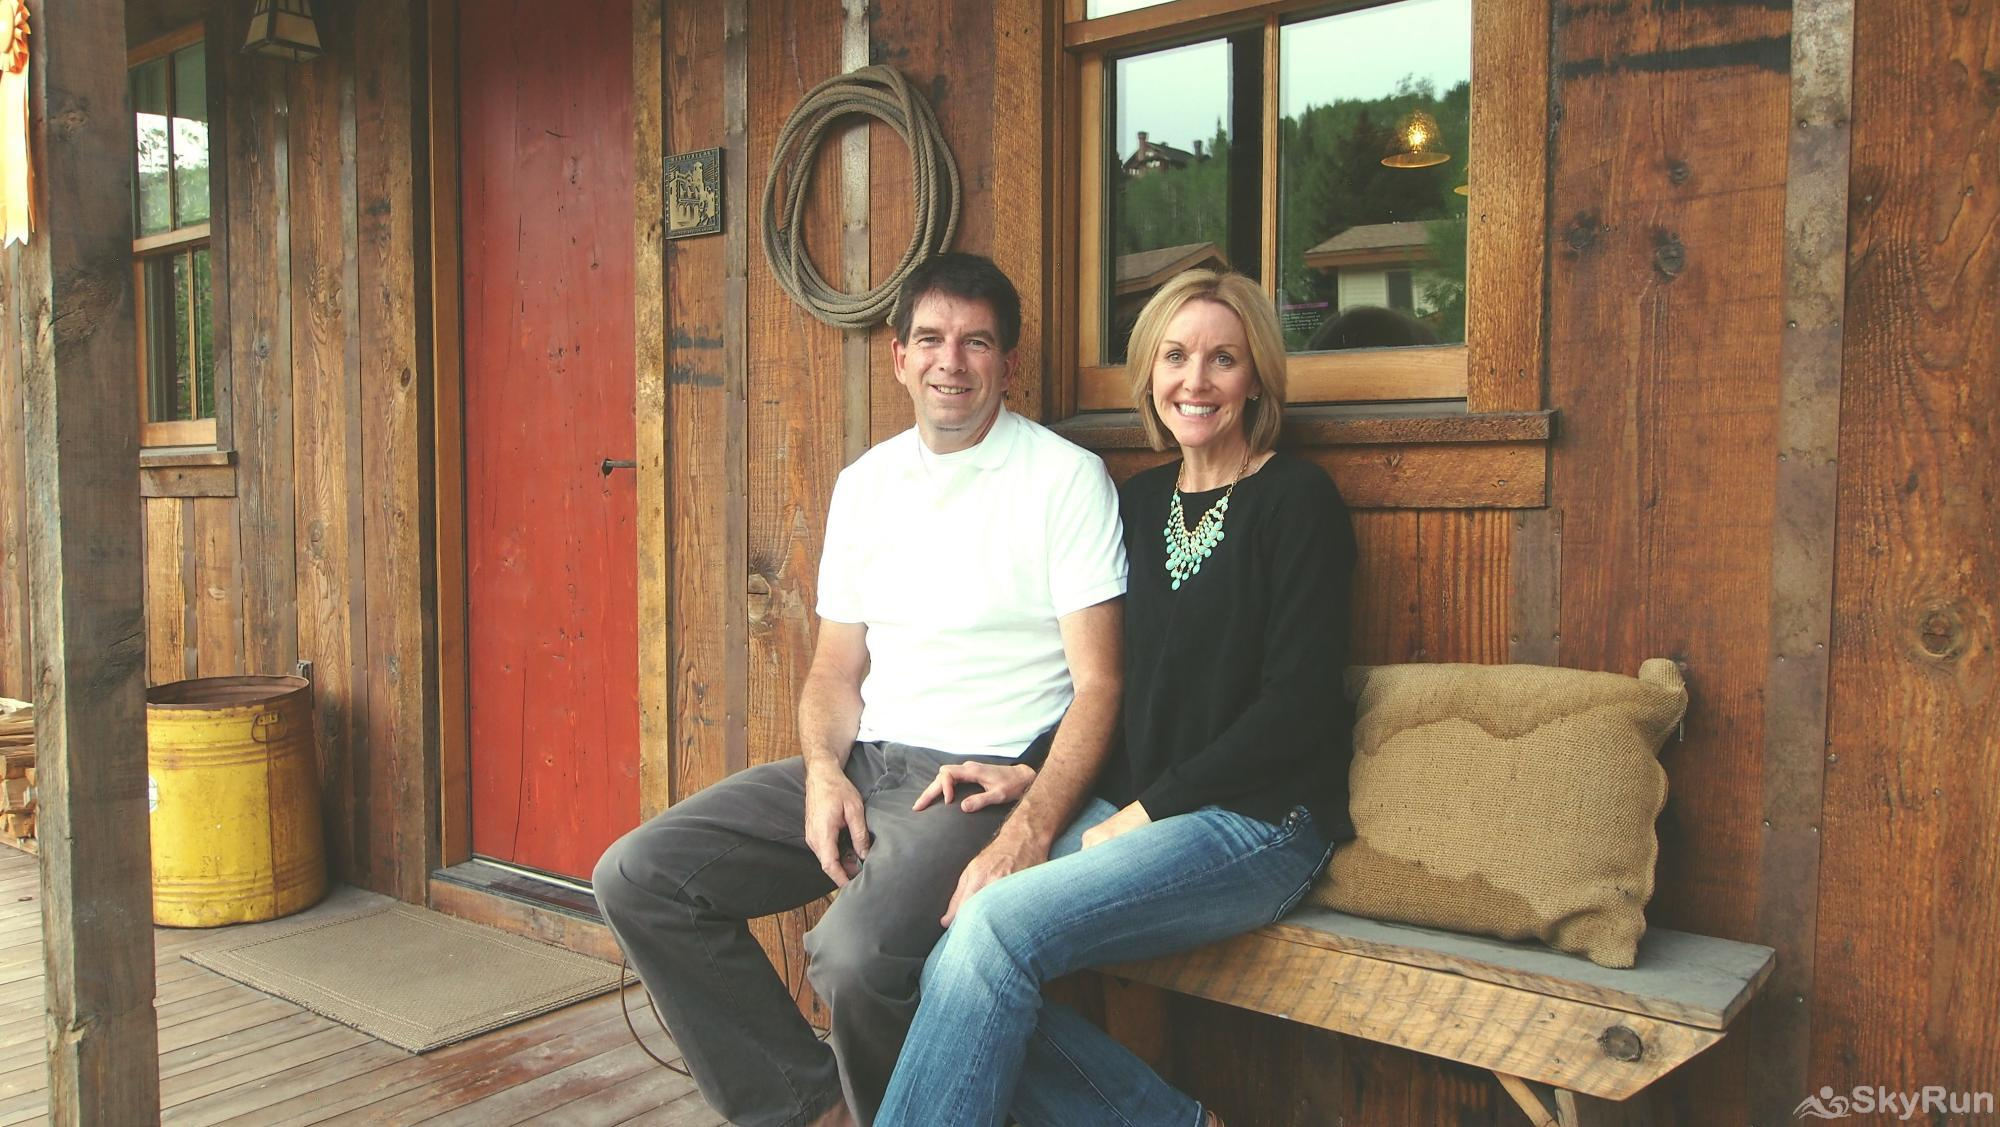 SnowCrest Cabin SkyRun's owners Michael and Fonda LeClerc